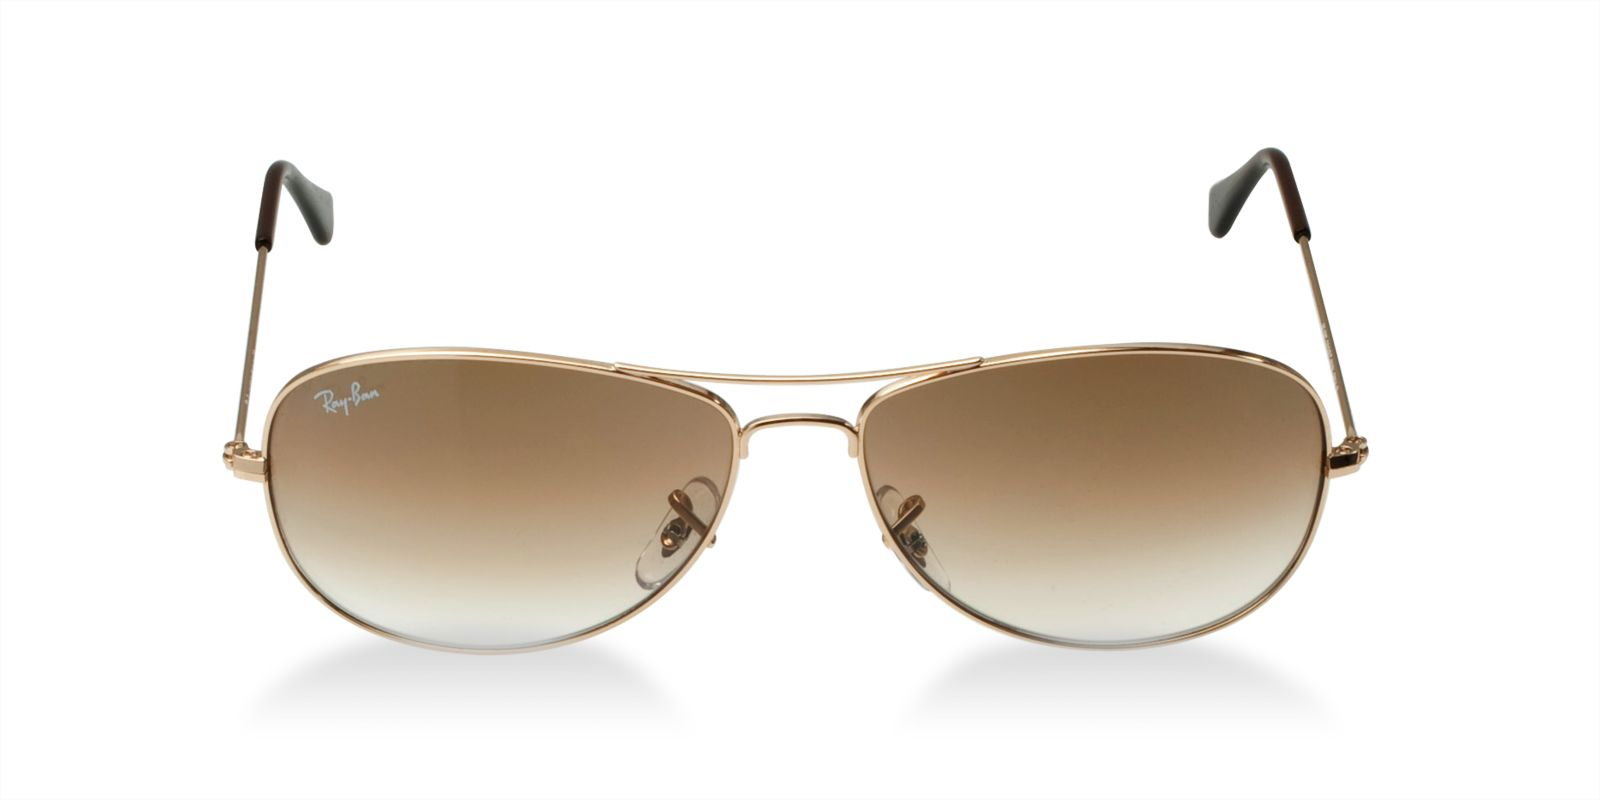 c3d0c4a50c8 RAY-BAN RB3362 001 51 GOLD GRADIENT BROWN COCKPIT SUNGLASSES